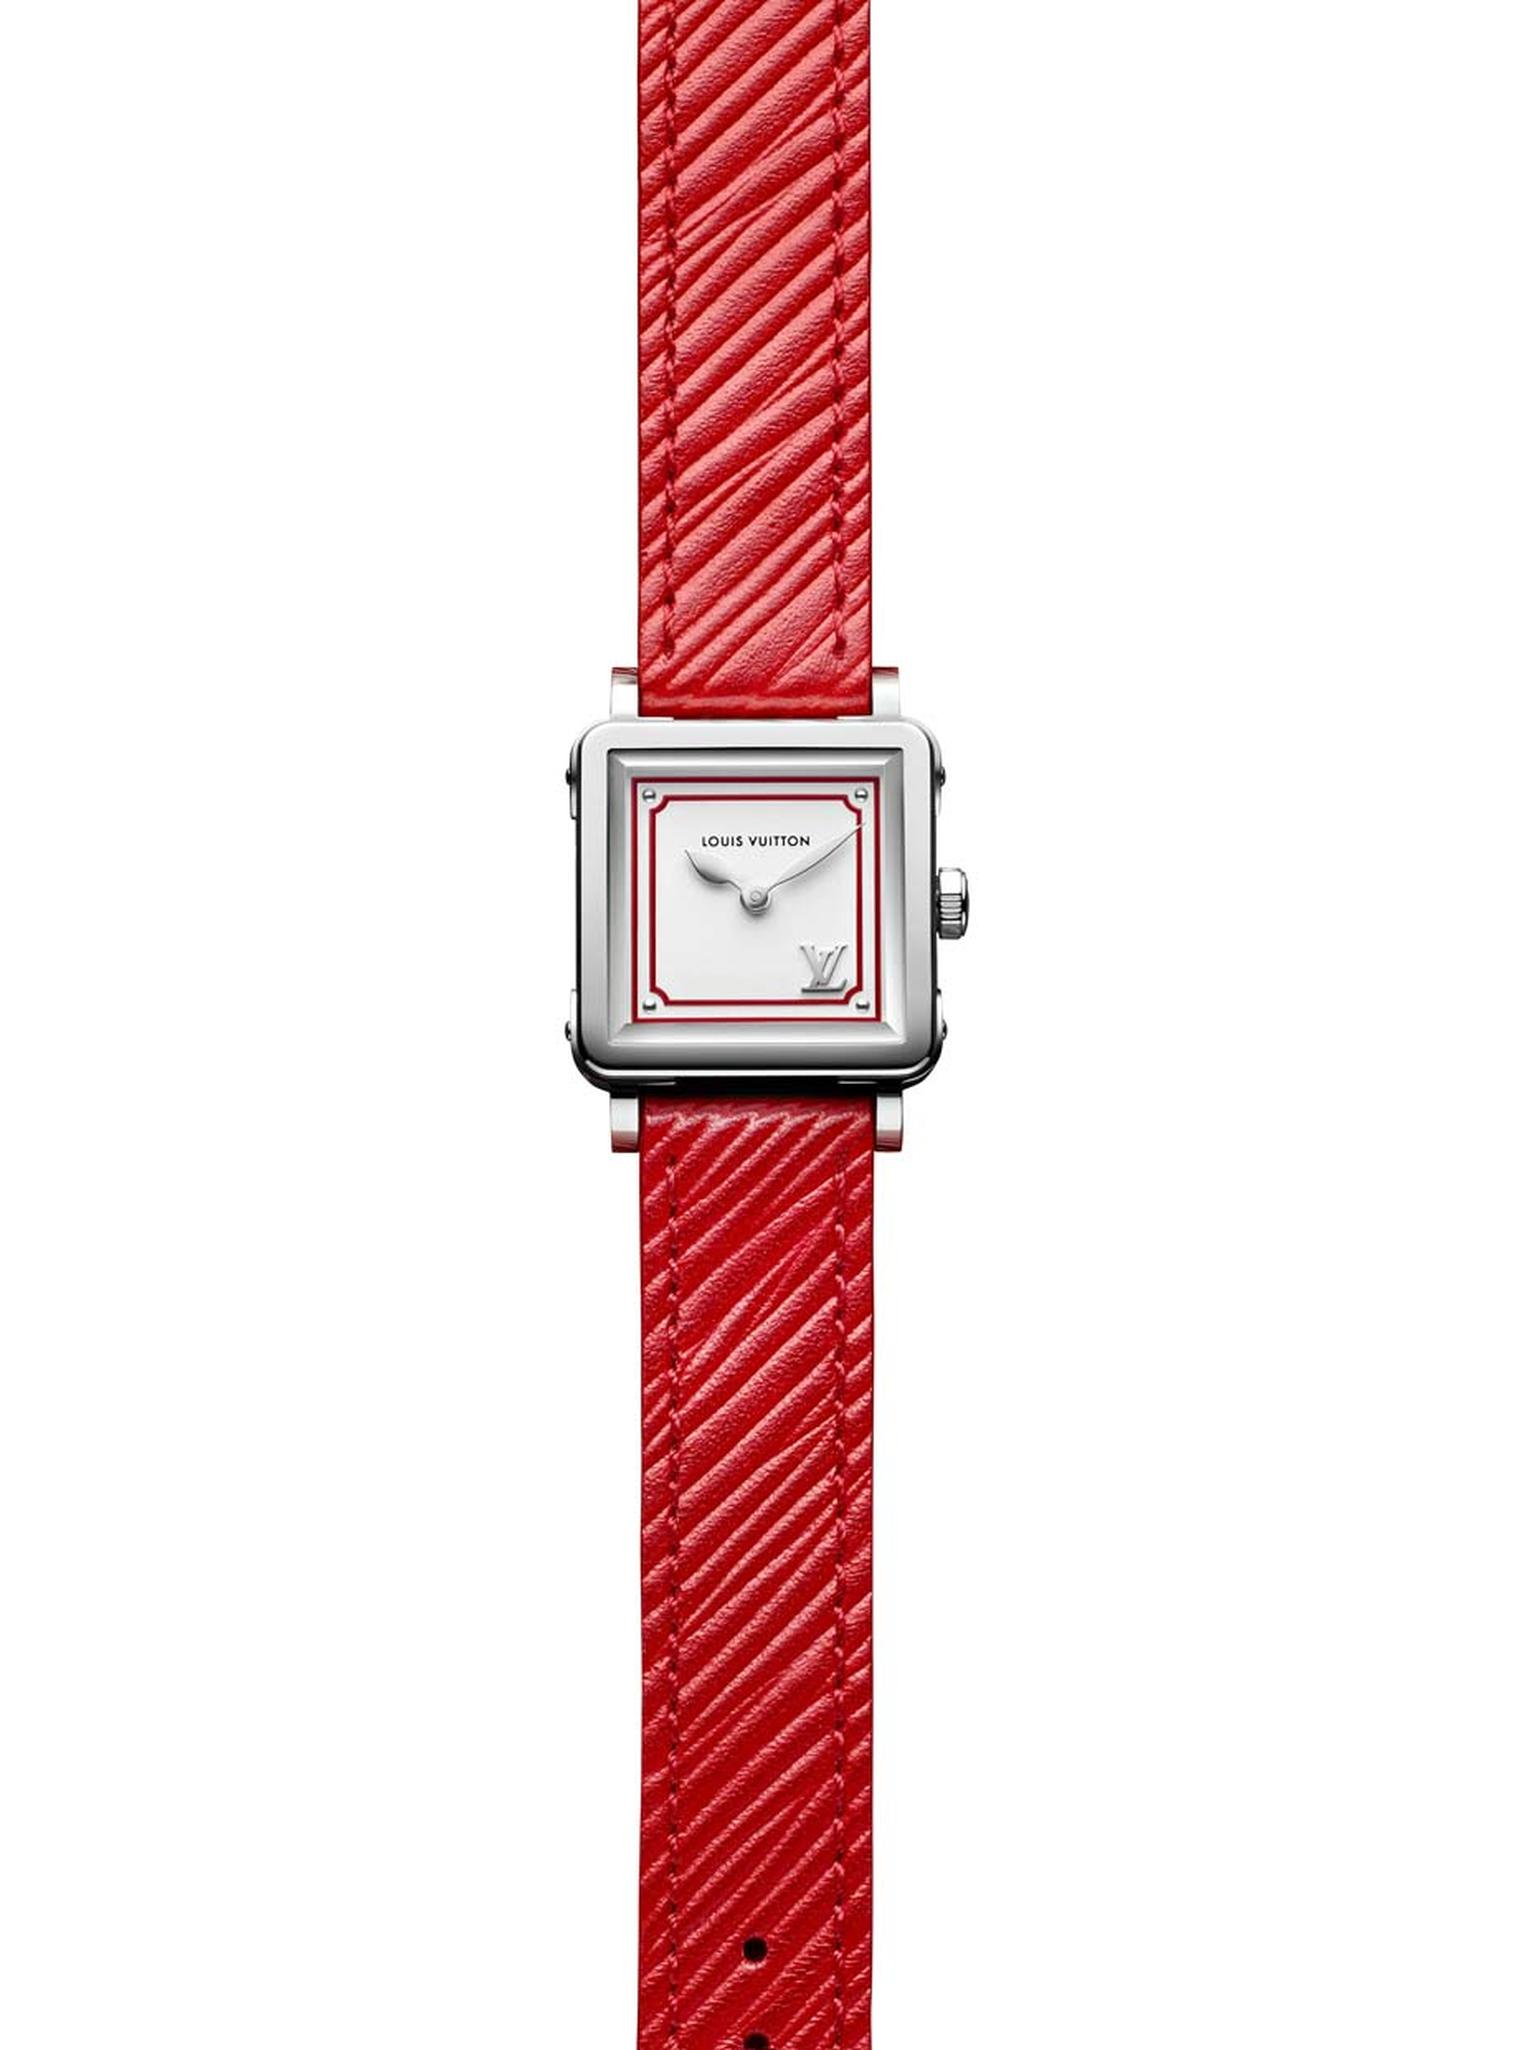 Louis Vuitton watches_Emprise Epi Coquelicot.jpg